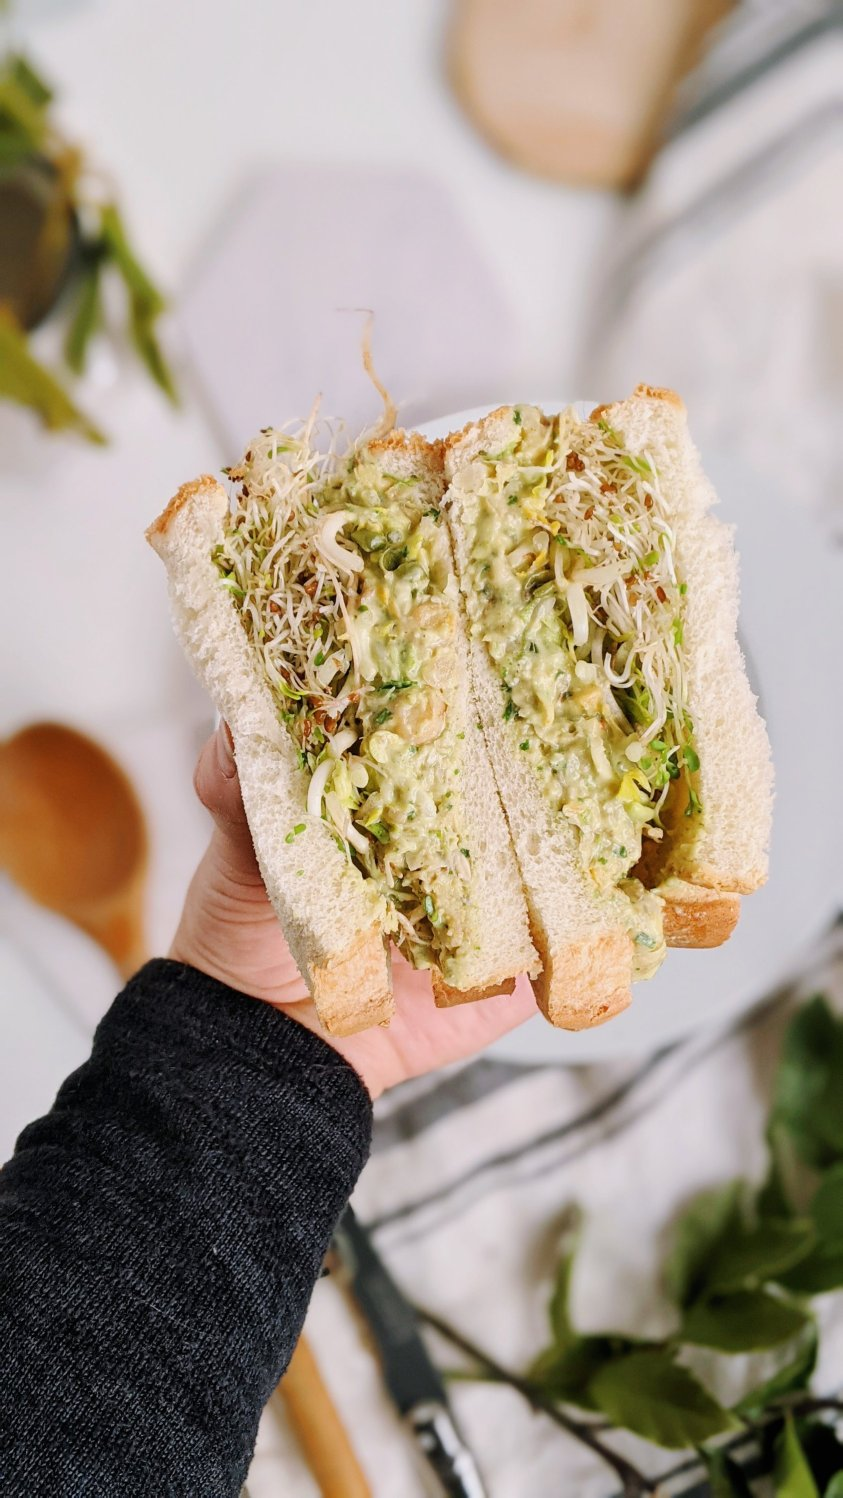 vegan pesto sandwich with chickpeas plant based gluten free pesto salad sandwiches no cook lunch recipes vegetarian gluten free healthy homemade lunches no heat